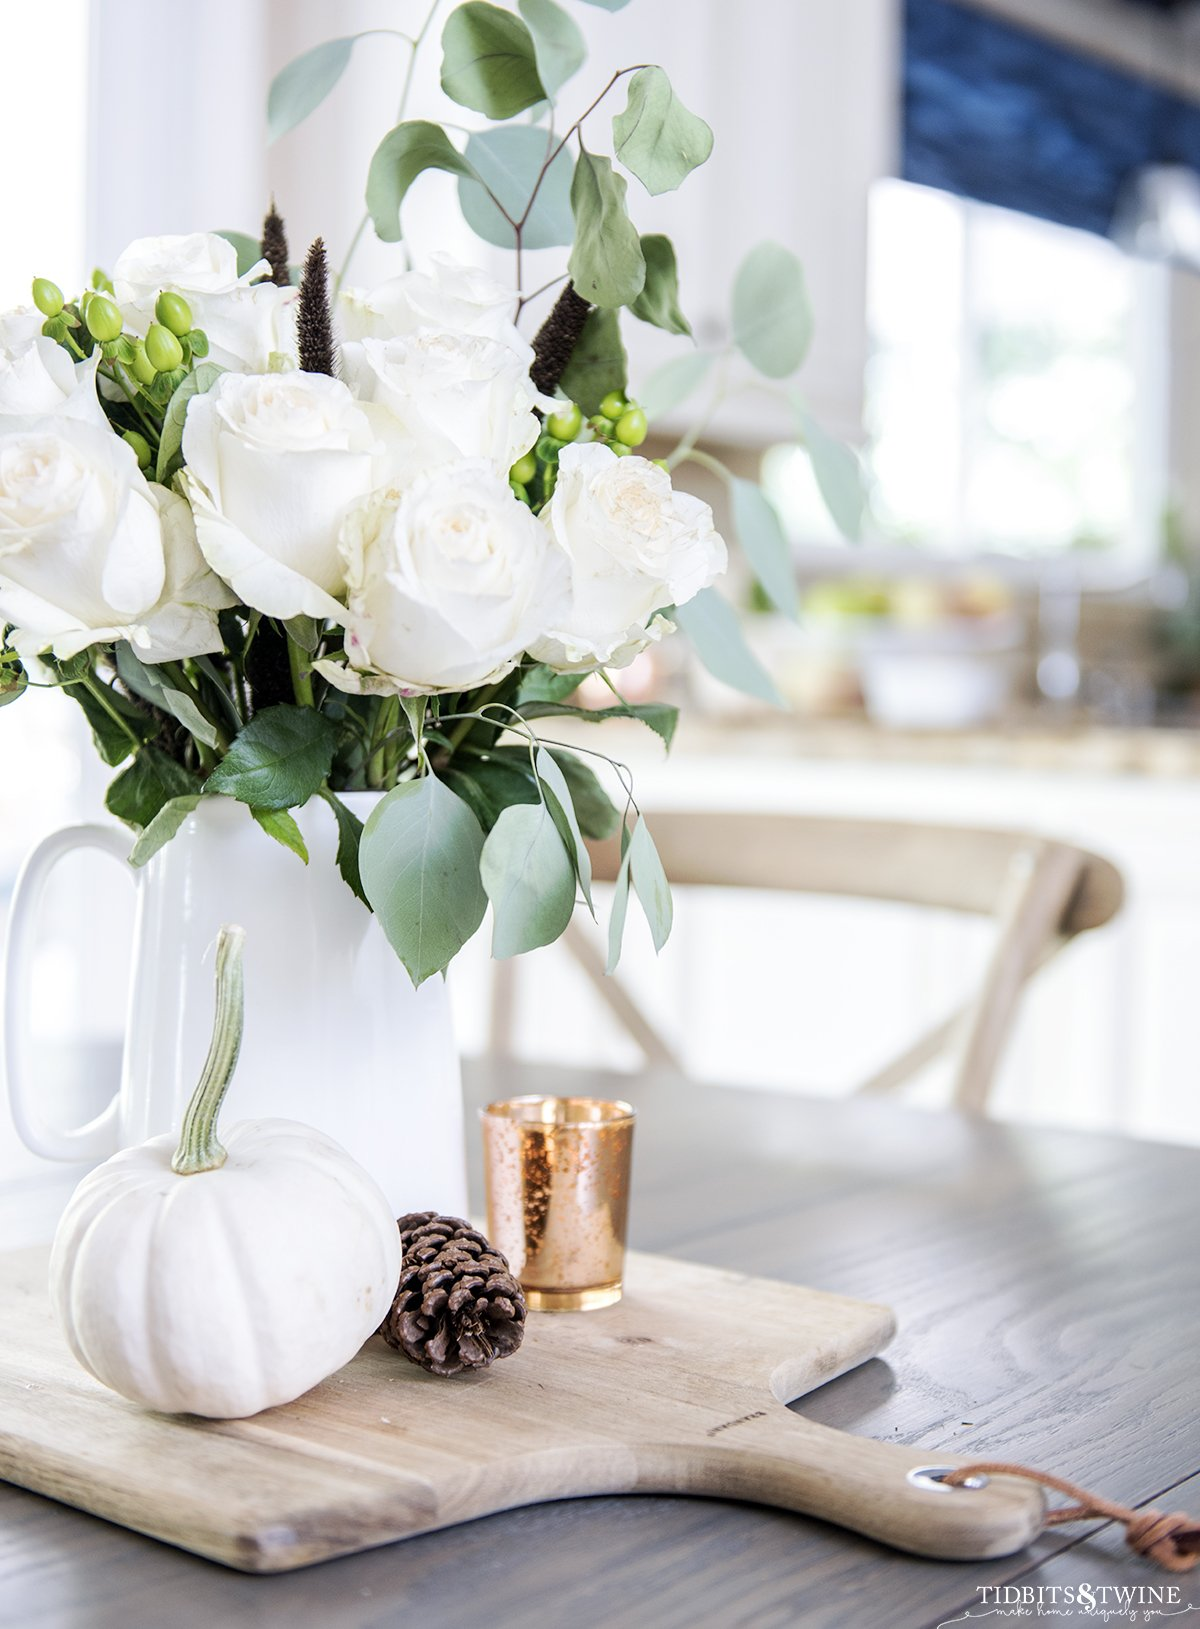 White roses in a white pitcher sit on a French country table in a kitchen more decorating tips here